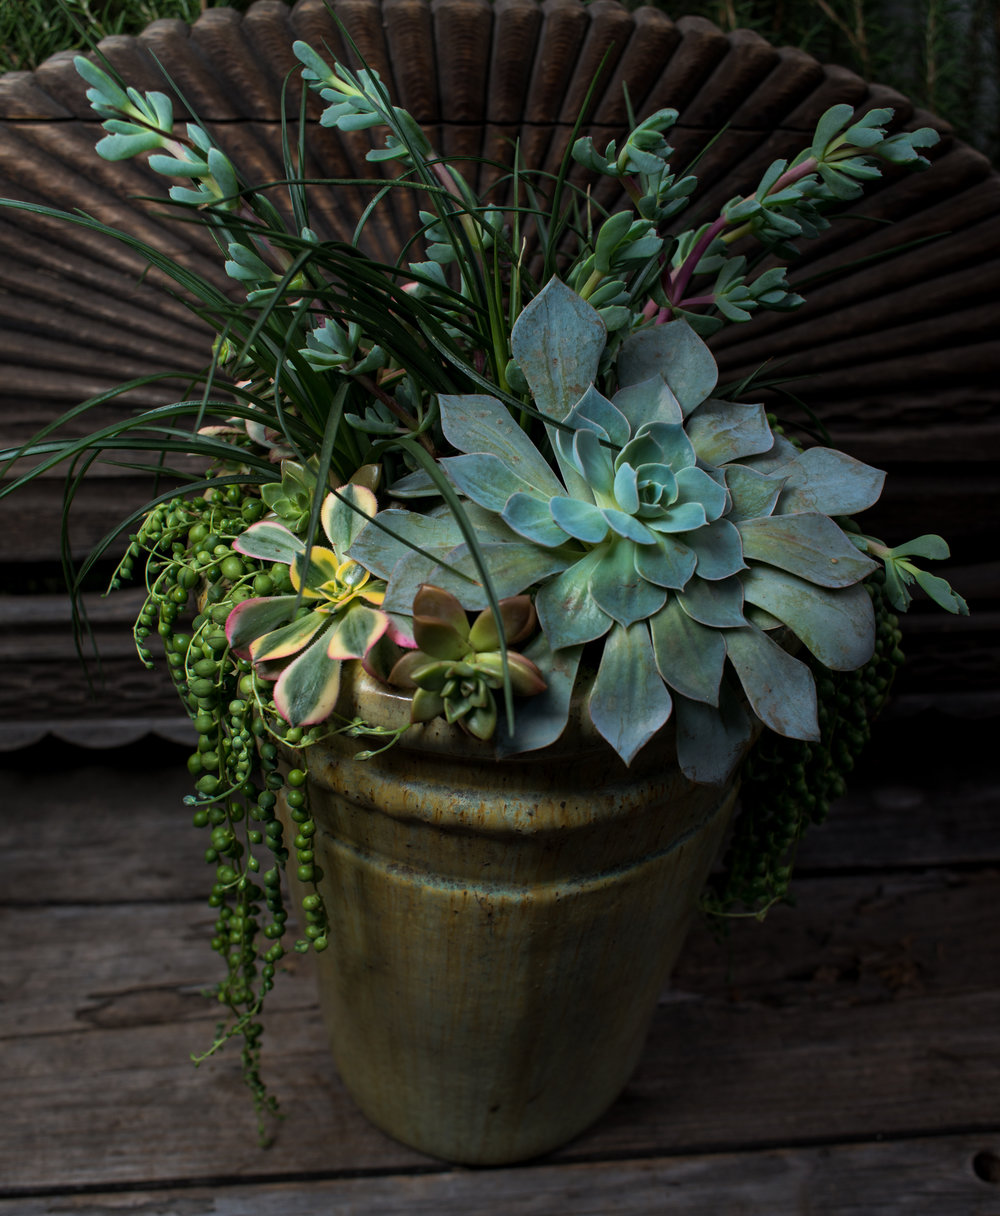 35_Succulents_Glazed_pot_outdoor_business_EL.jpg